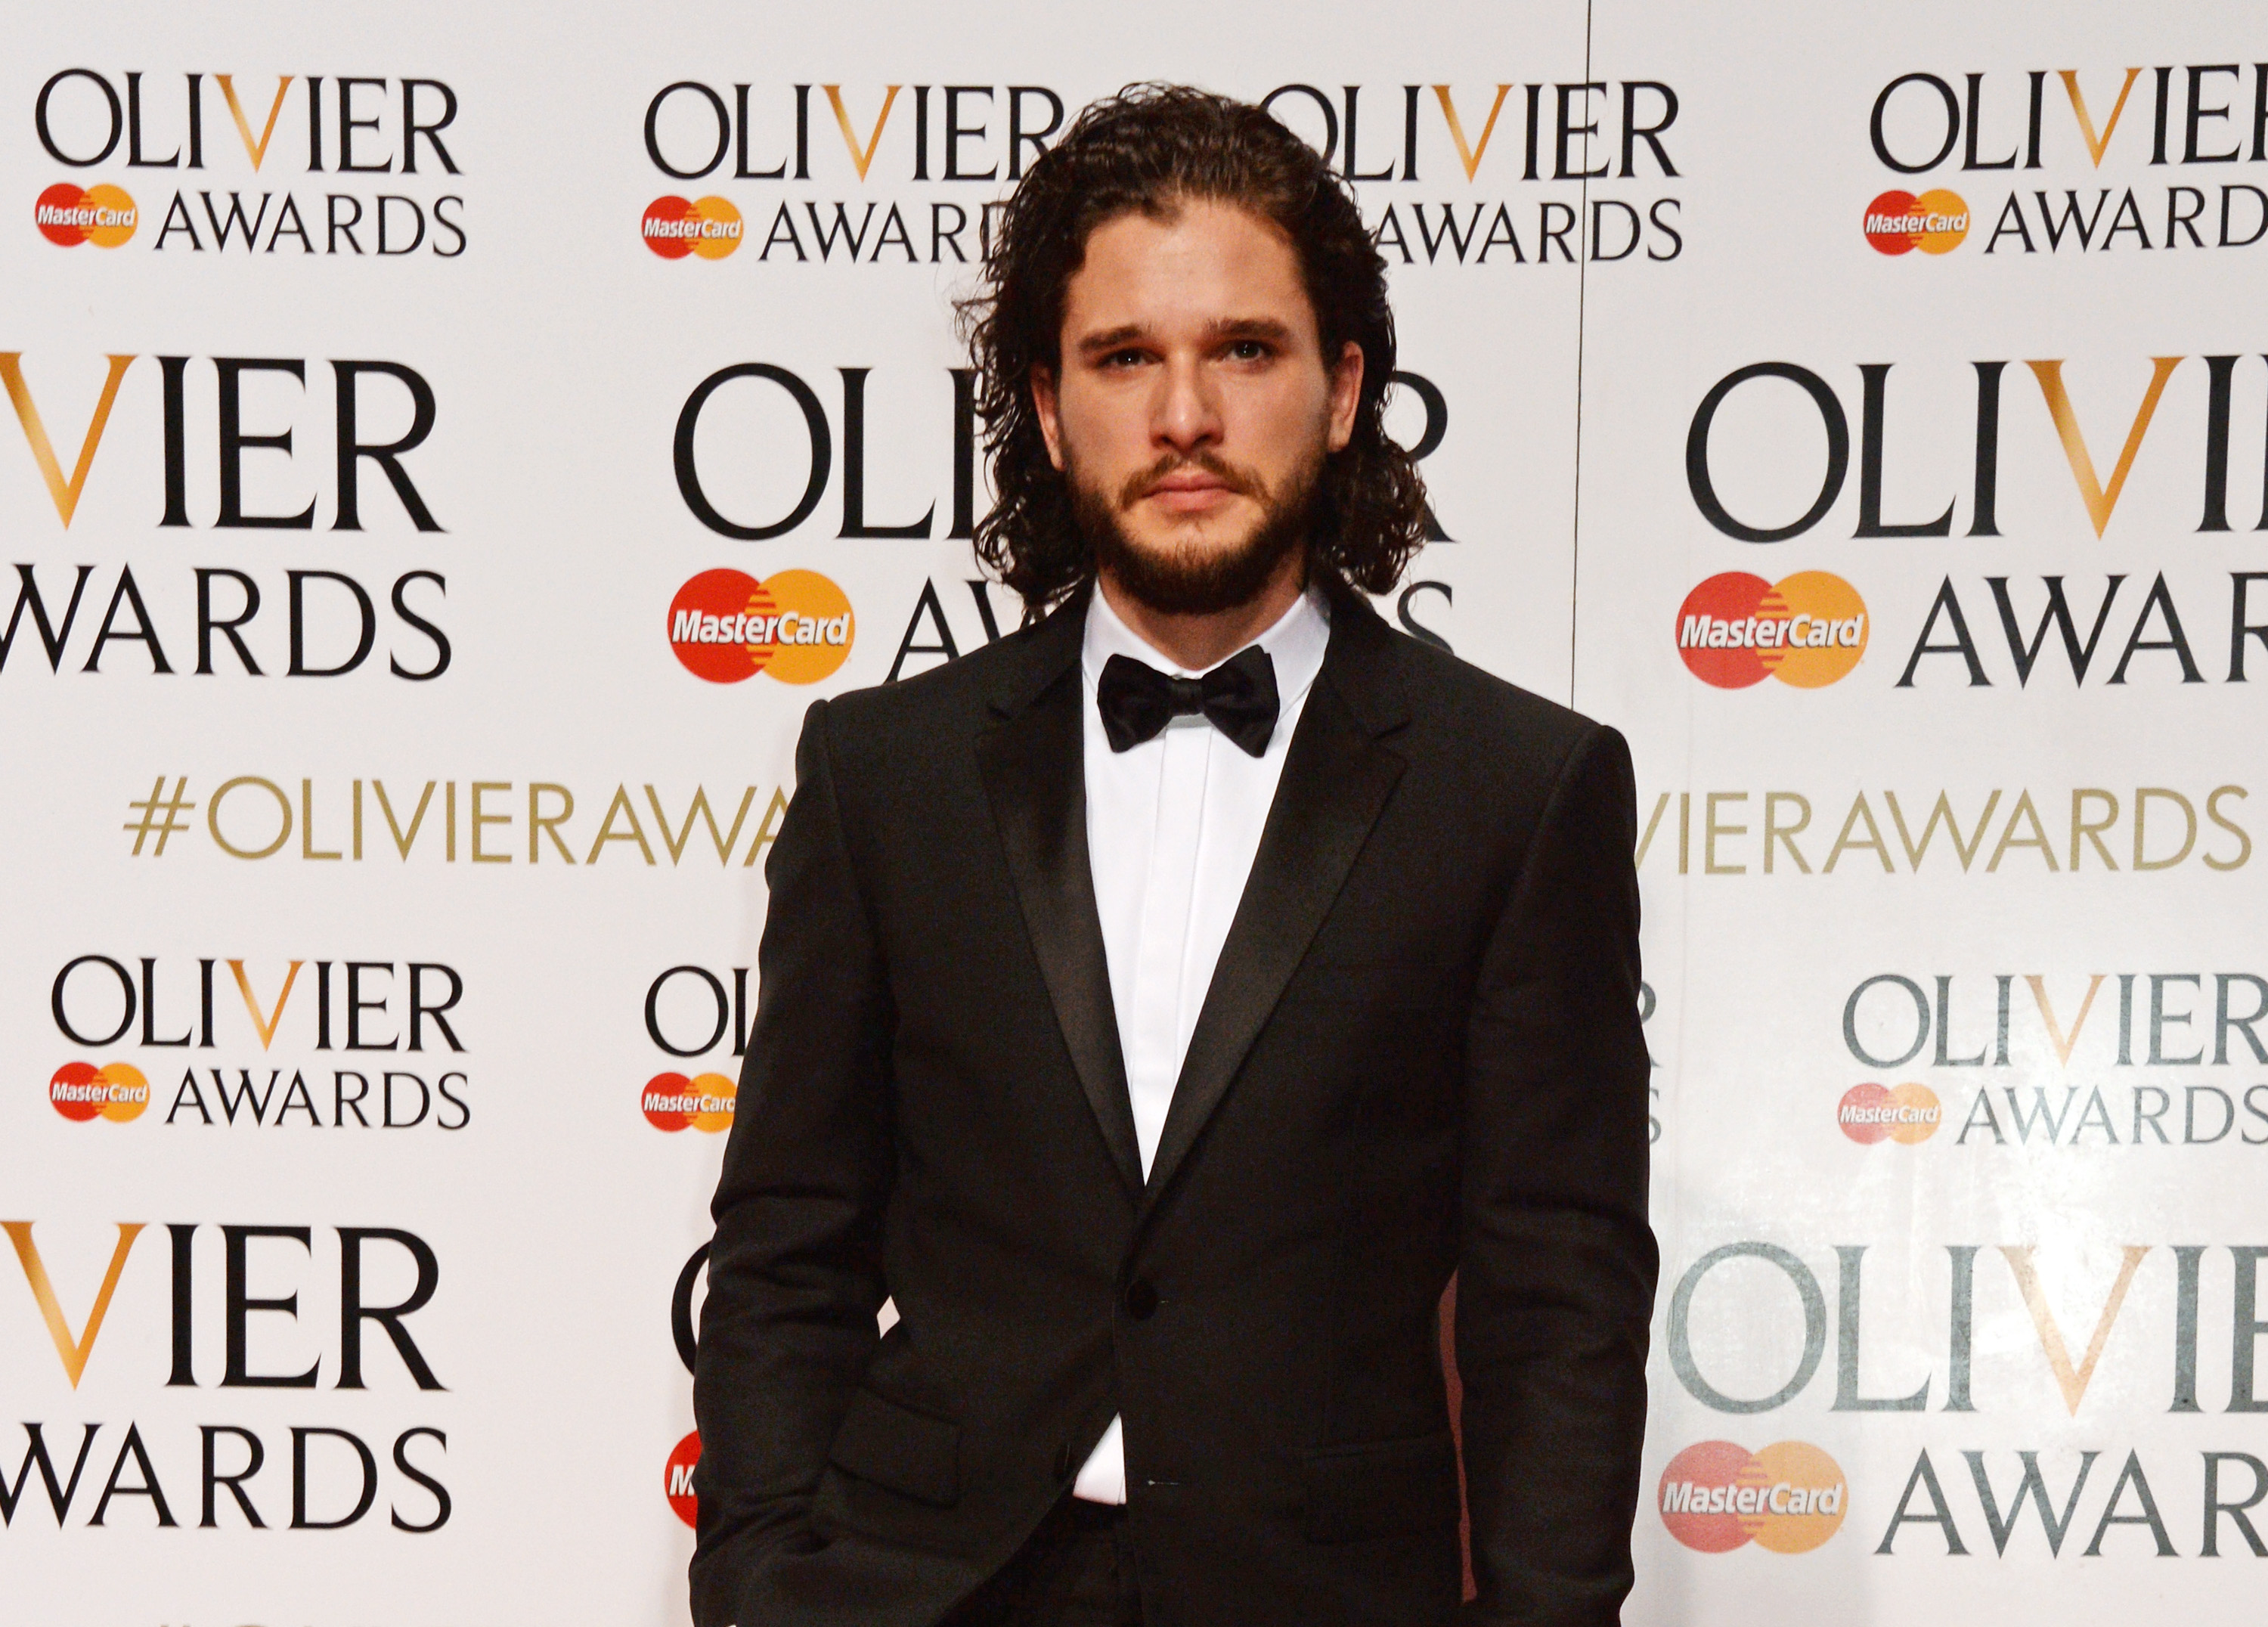 LONDON, ENGLAND - APRIL 03:  Kit Harington poses in the Winners Room at The Olivier Awards with Mastercard at The Royal Opera House on April 3, 2016 in London, England.  (Photo by David M. Benett/Dave Benett/Getty Images)